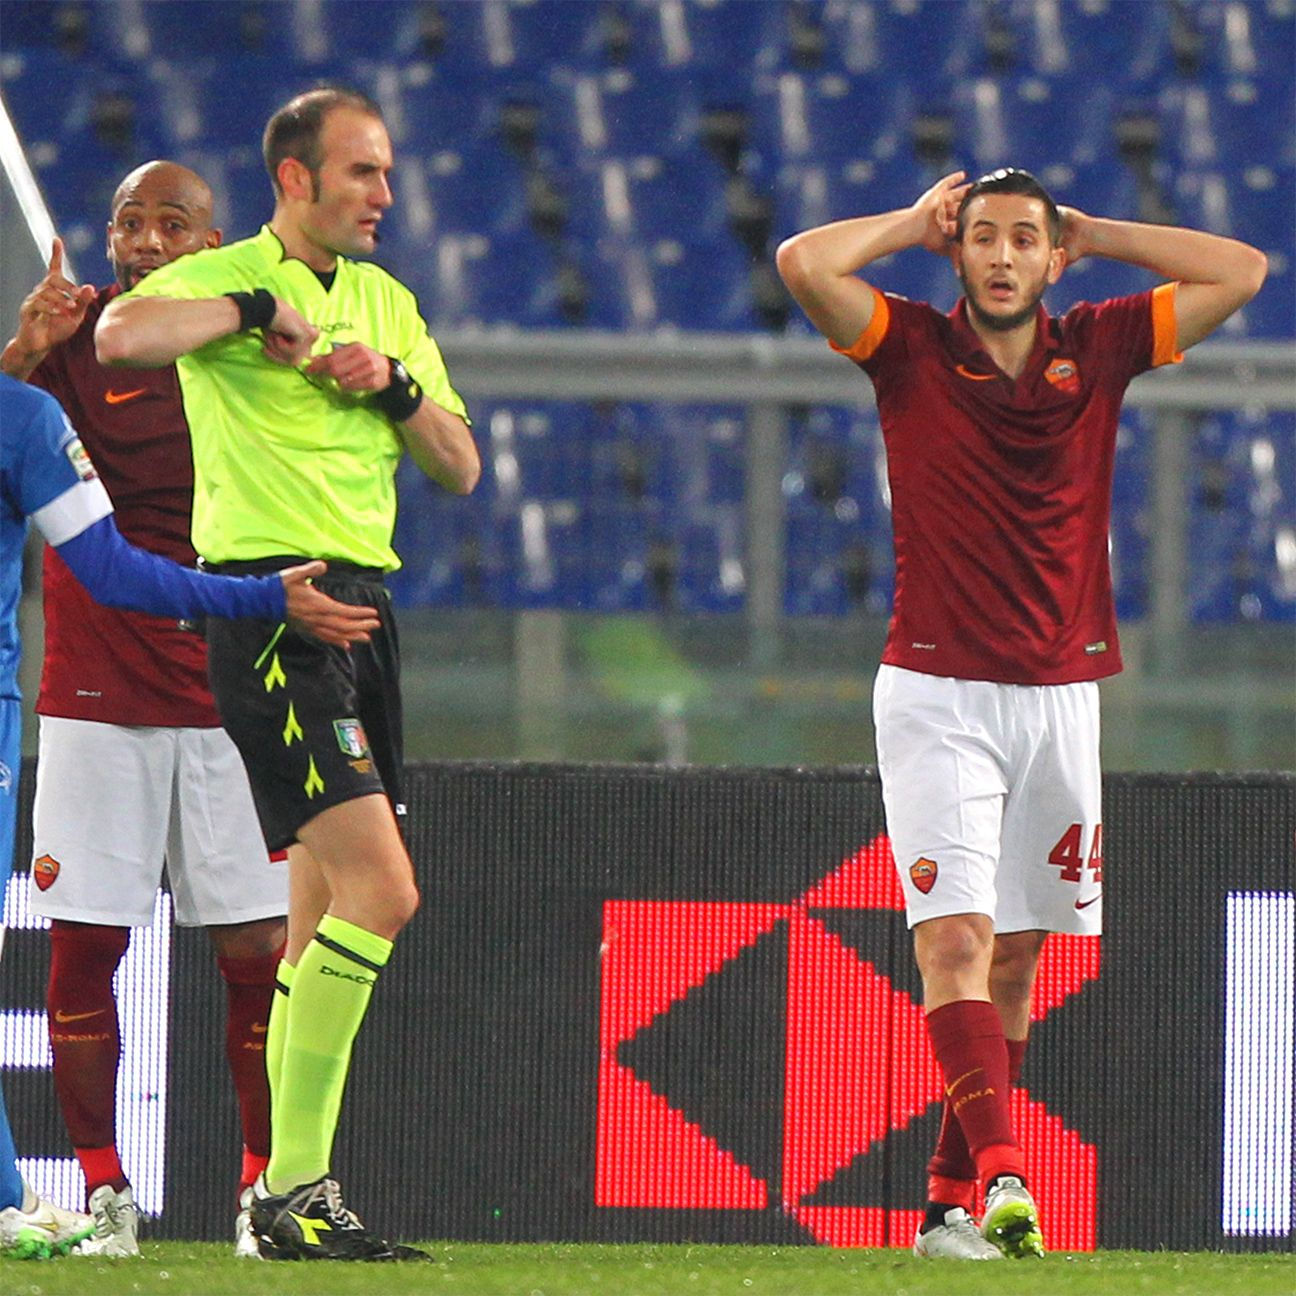 Kostas Manolas' first half red card summed up Roma's frustration on the day versus Empoli.